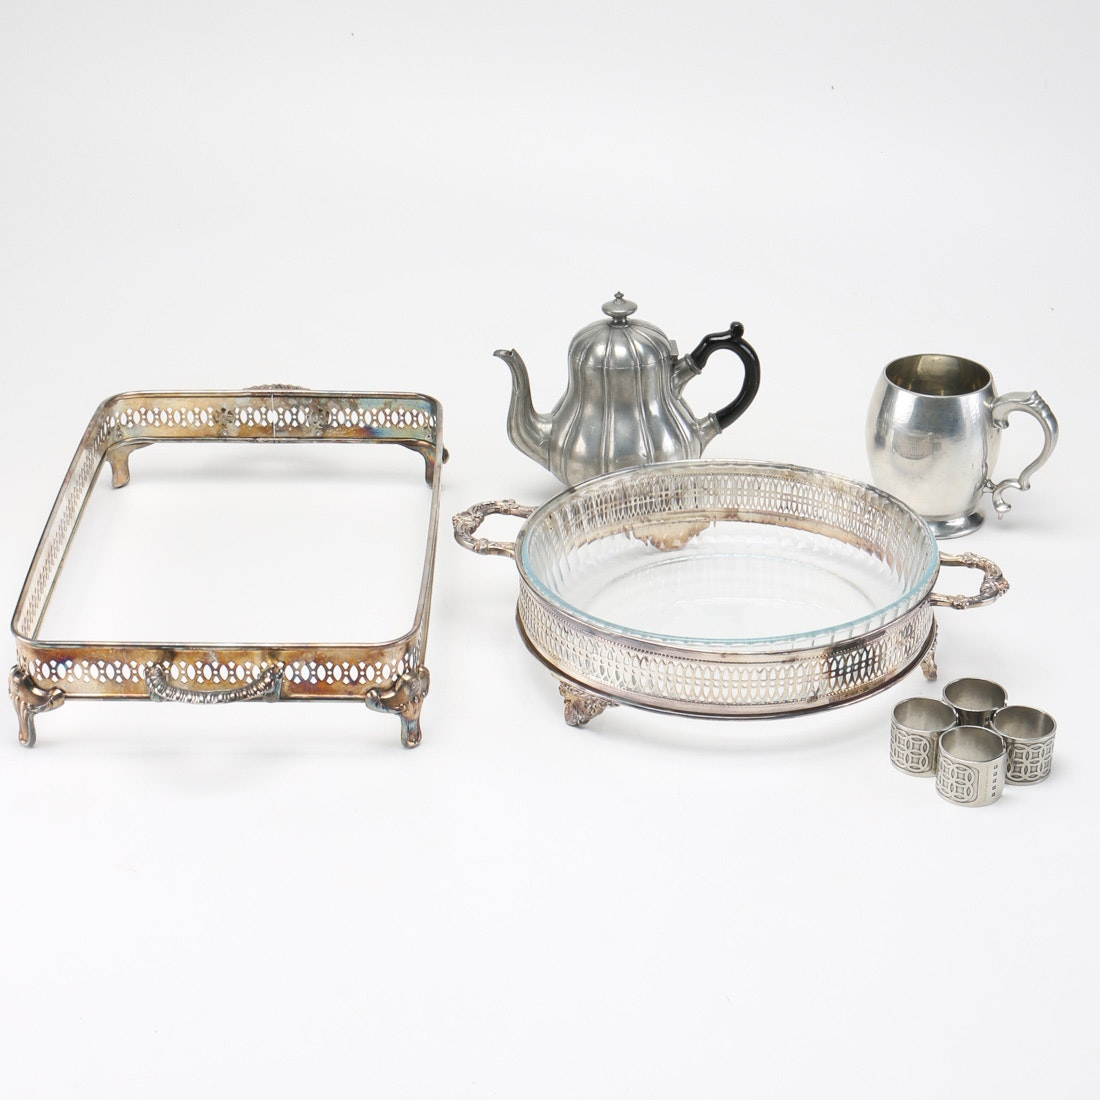 Assortment of Silver Plate and Pewter Tableware